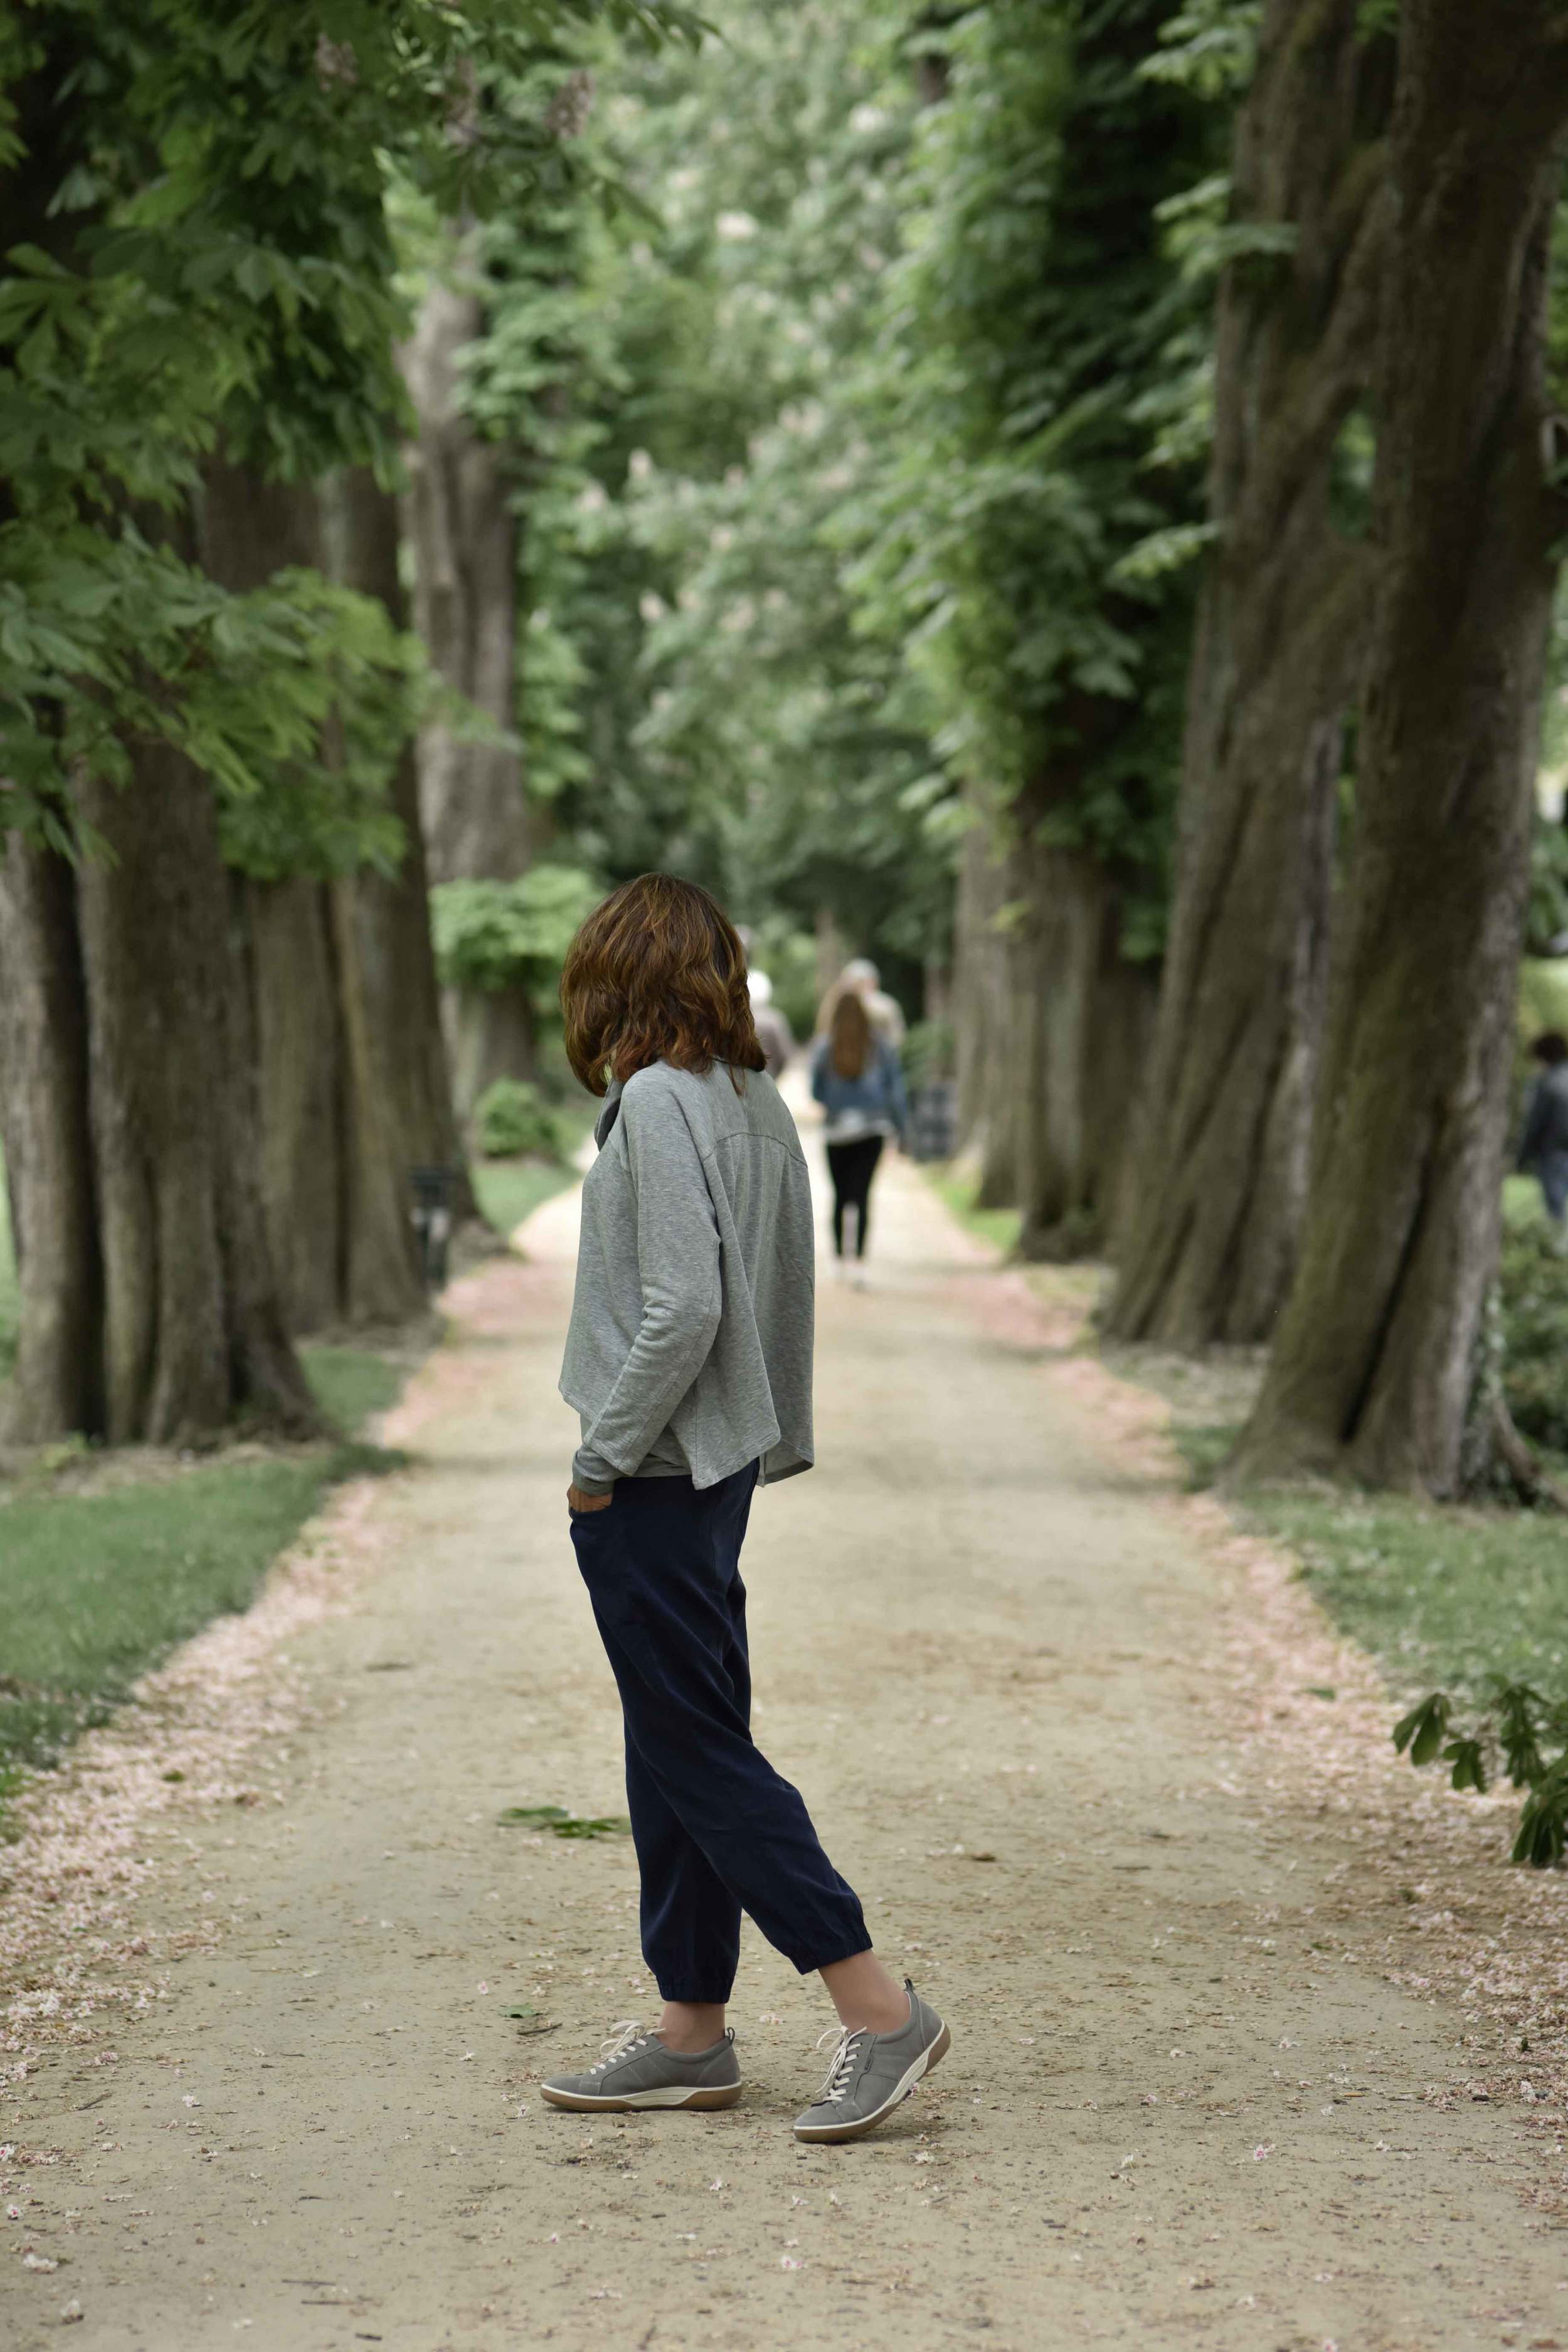 Visiting the park in Ratingen, Germany. Image©sourcingstyle.com, Photo: Nicola Nolting